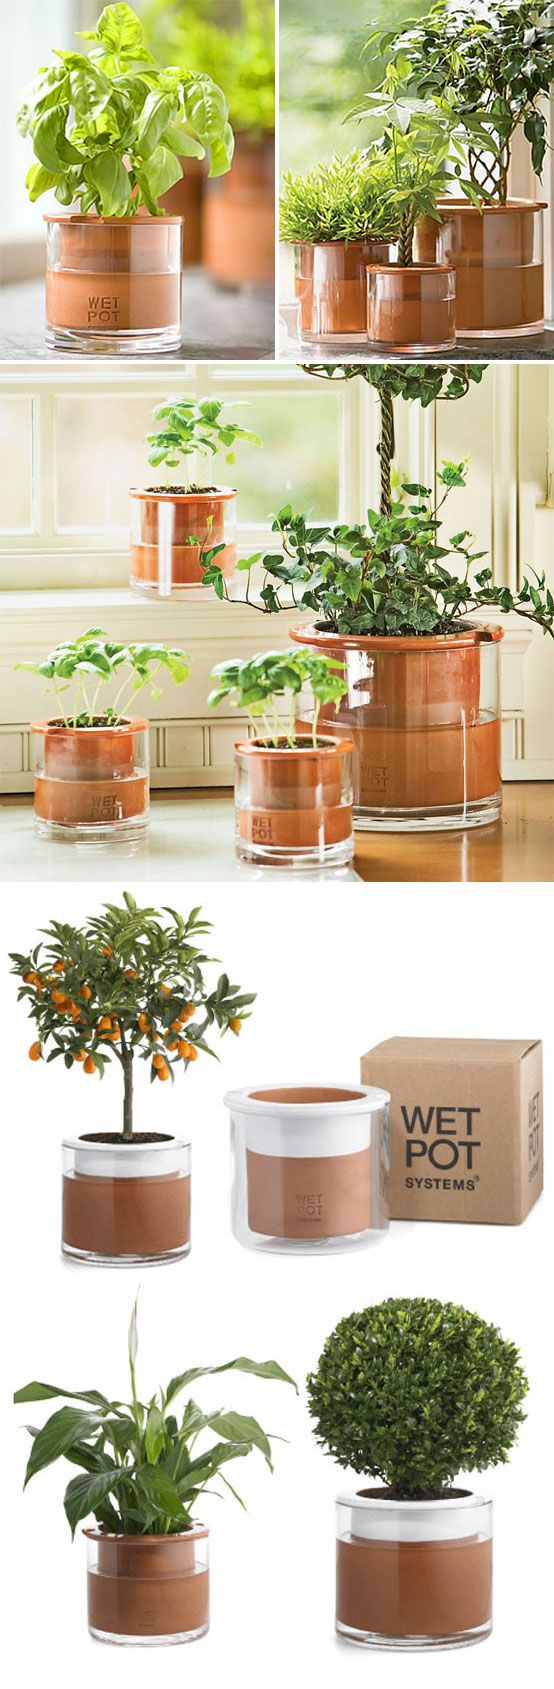 HACKABLE :: Wet Pots by Wet Pot Systems :: (no longer sold :( waaah!) | gardeners.com :: Swedish self-watering planters. Plant absorbs moisture as needed thru the porus clay inner pot. :: REALLY bummed these aren't being sold anymore, to say the least. So, I tested this with an unglazed terracotta pot (the kind that already have a bumped out lip at the top quarter or so of the pot & put it inside a straight sided glass container from the dollar store. It works! | #selfwateringpot #diyplanter